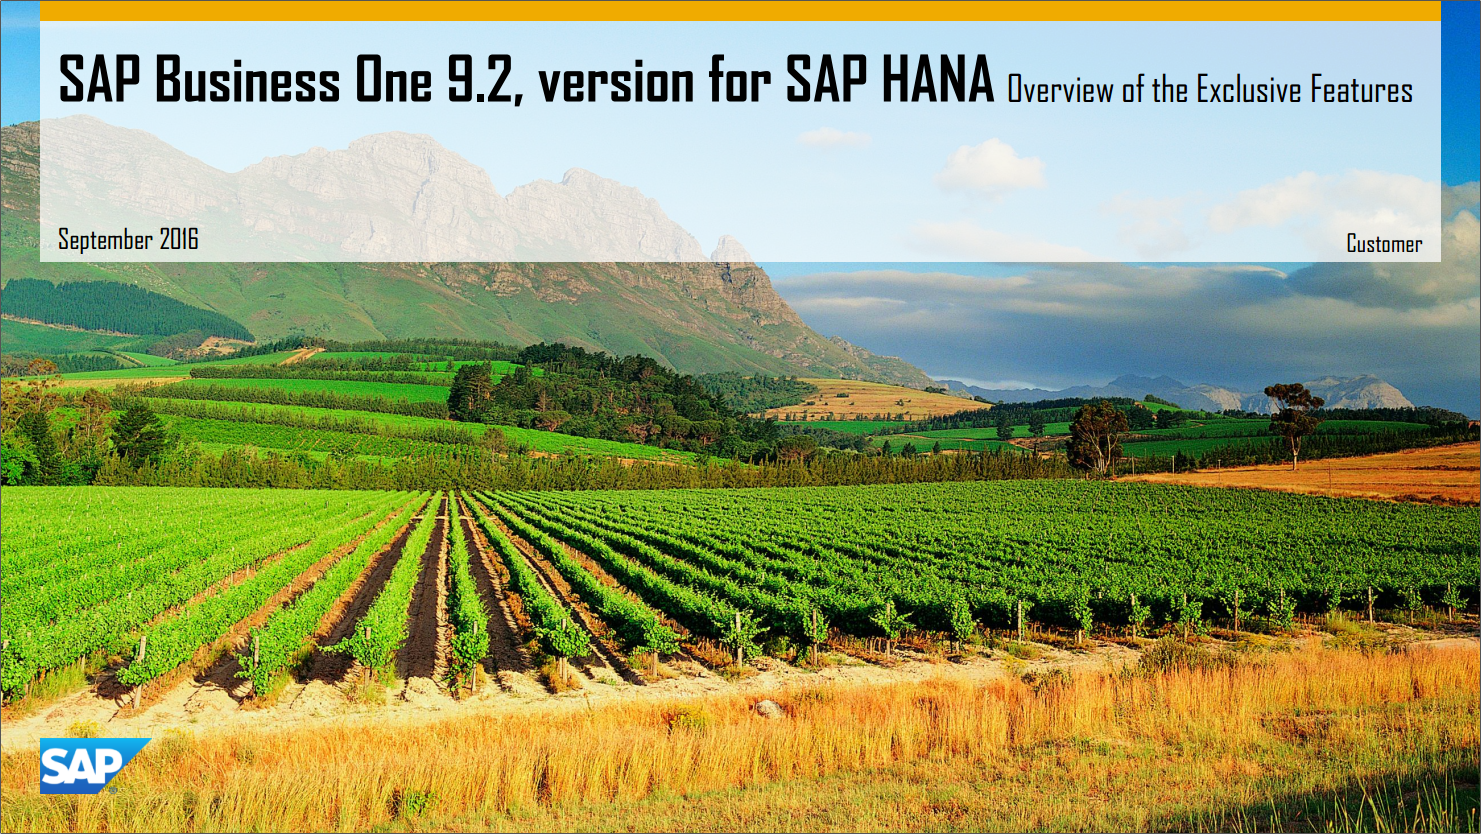 SAP Business One 9.2, version for SAP HANA Exclusive Features